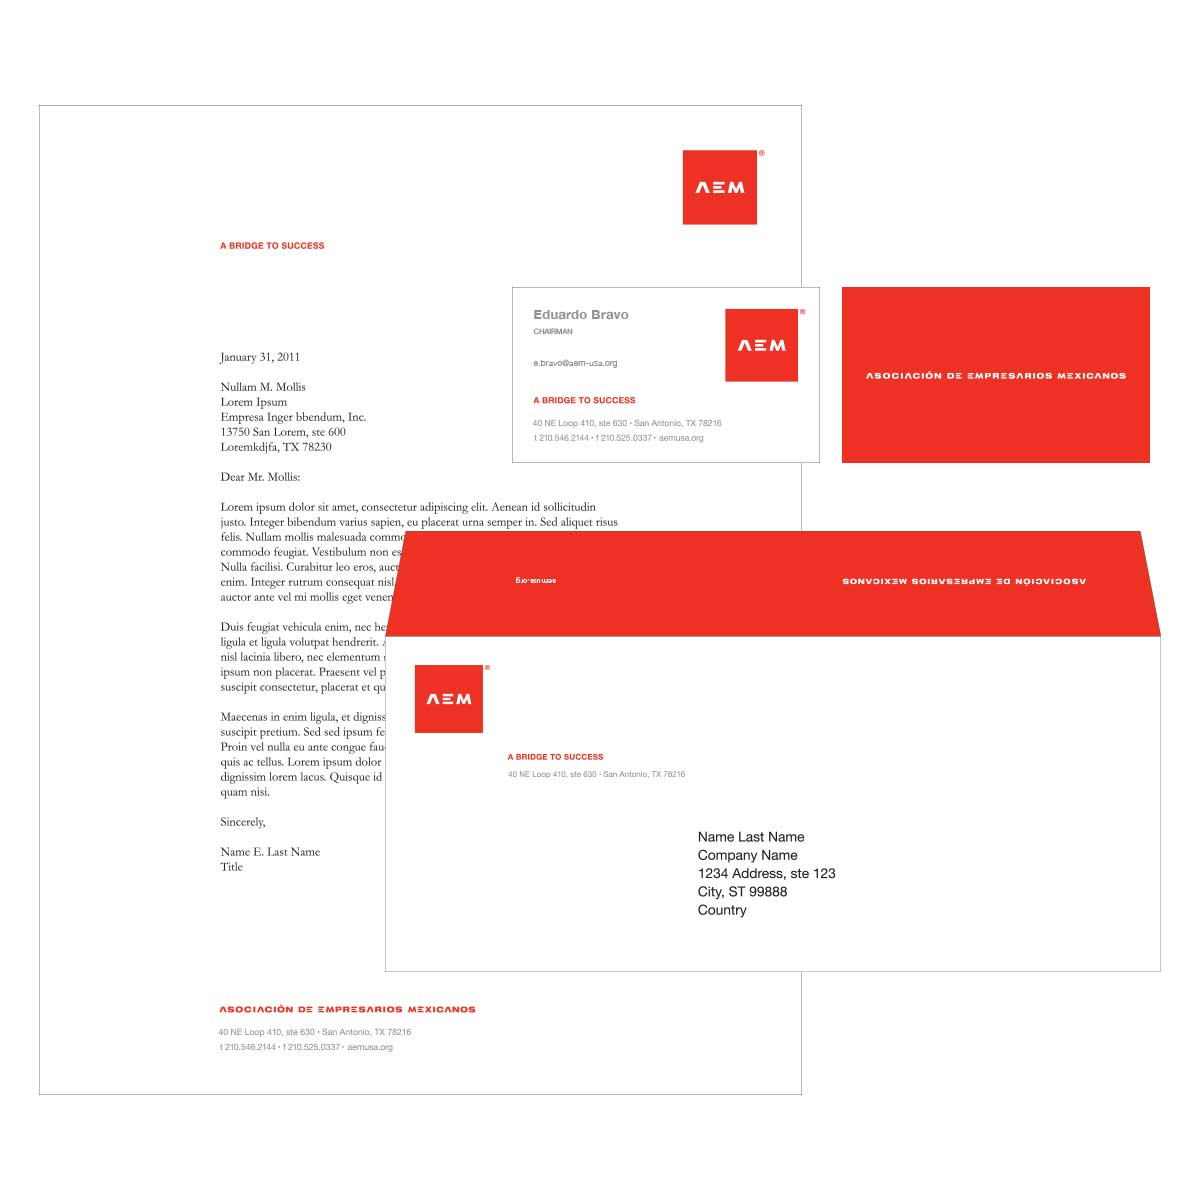 gd_casestudy_aem_1200x1200_stationary